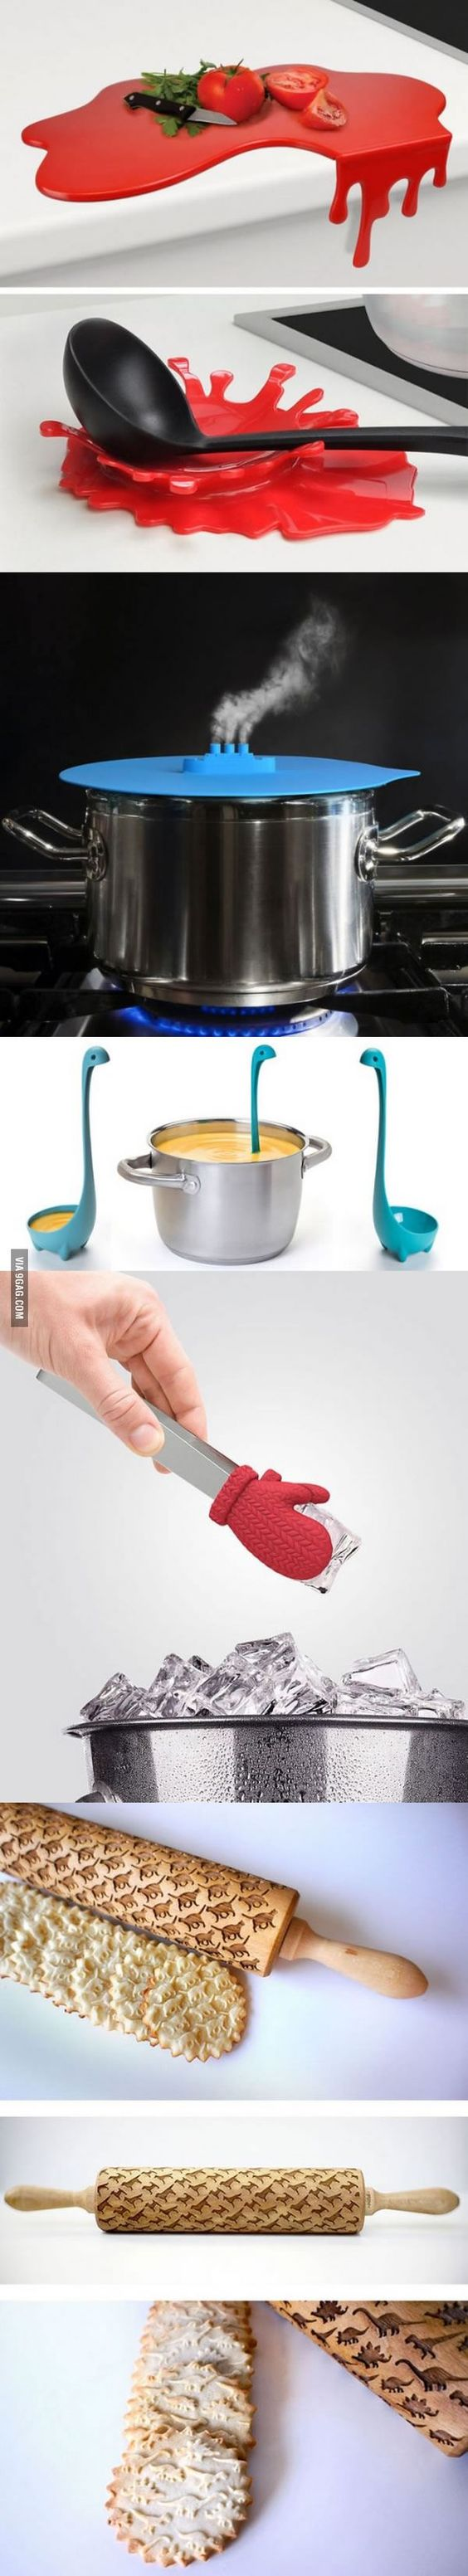 Creative Kitchen Gadgets Kitchen Gadgets Gadgets And